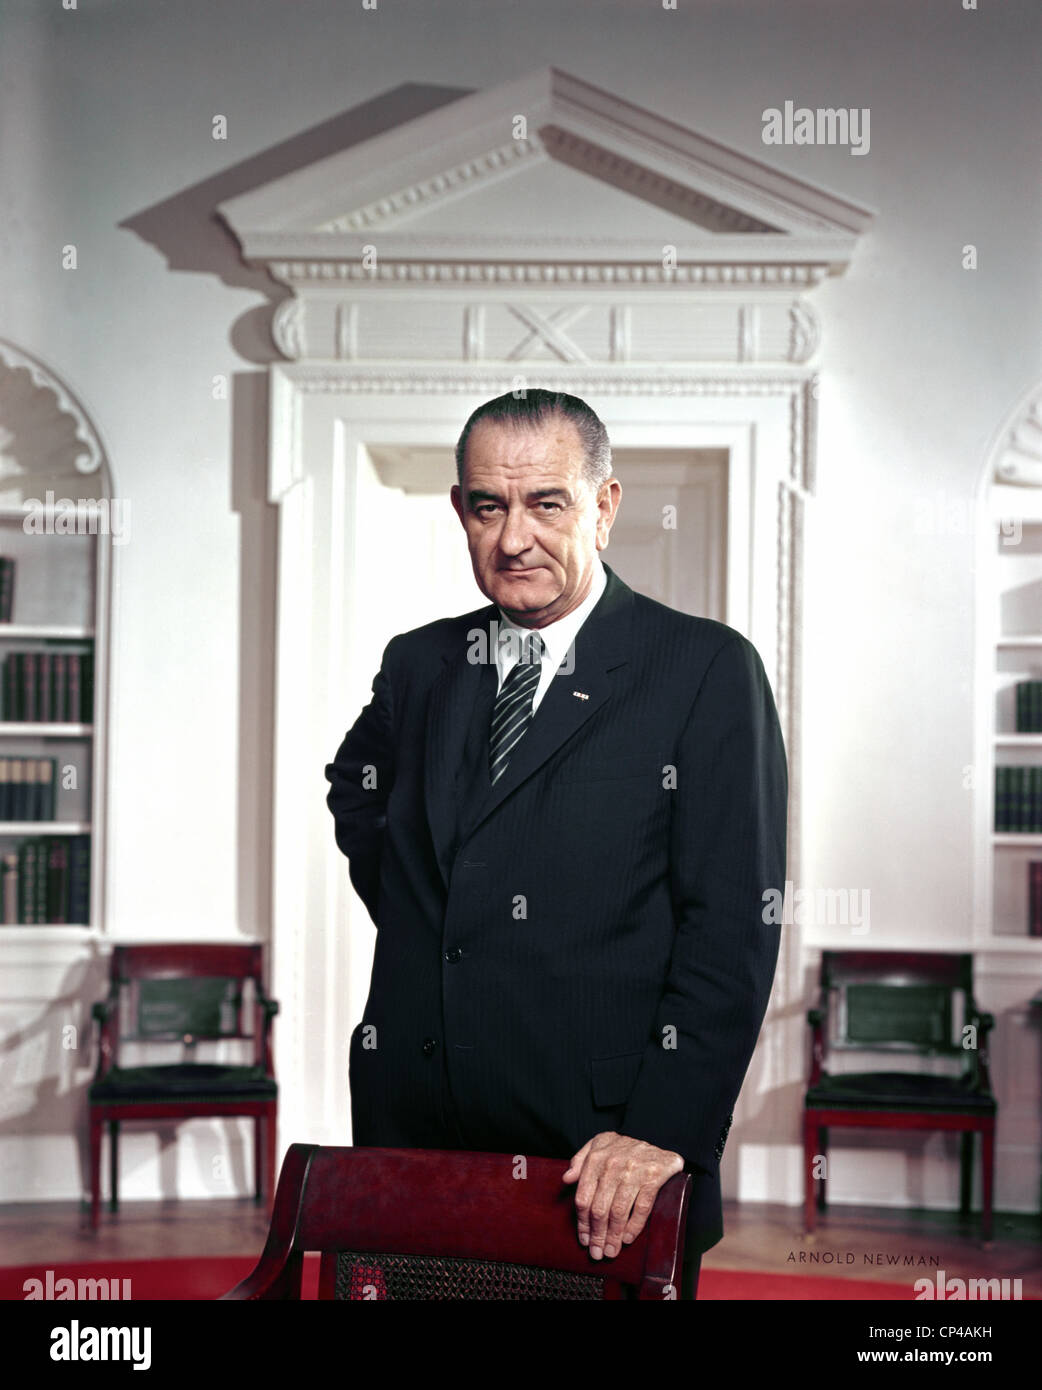 Official White House Portraits Stock Photos Minimal Carter Pleated Shirt Putih S President Lyndon Johnson Portrait Taken By Arnold Newman In The Oval Office Ca